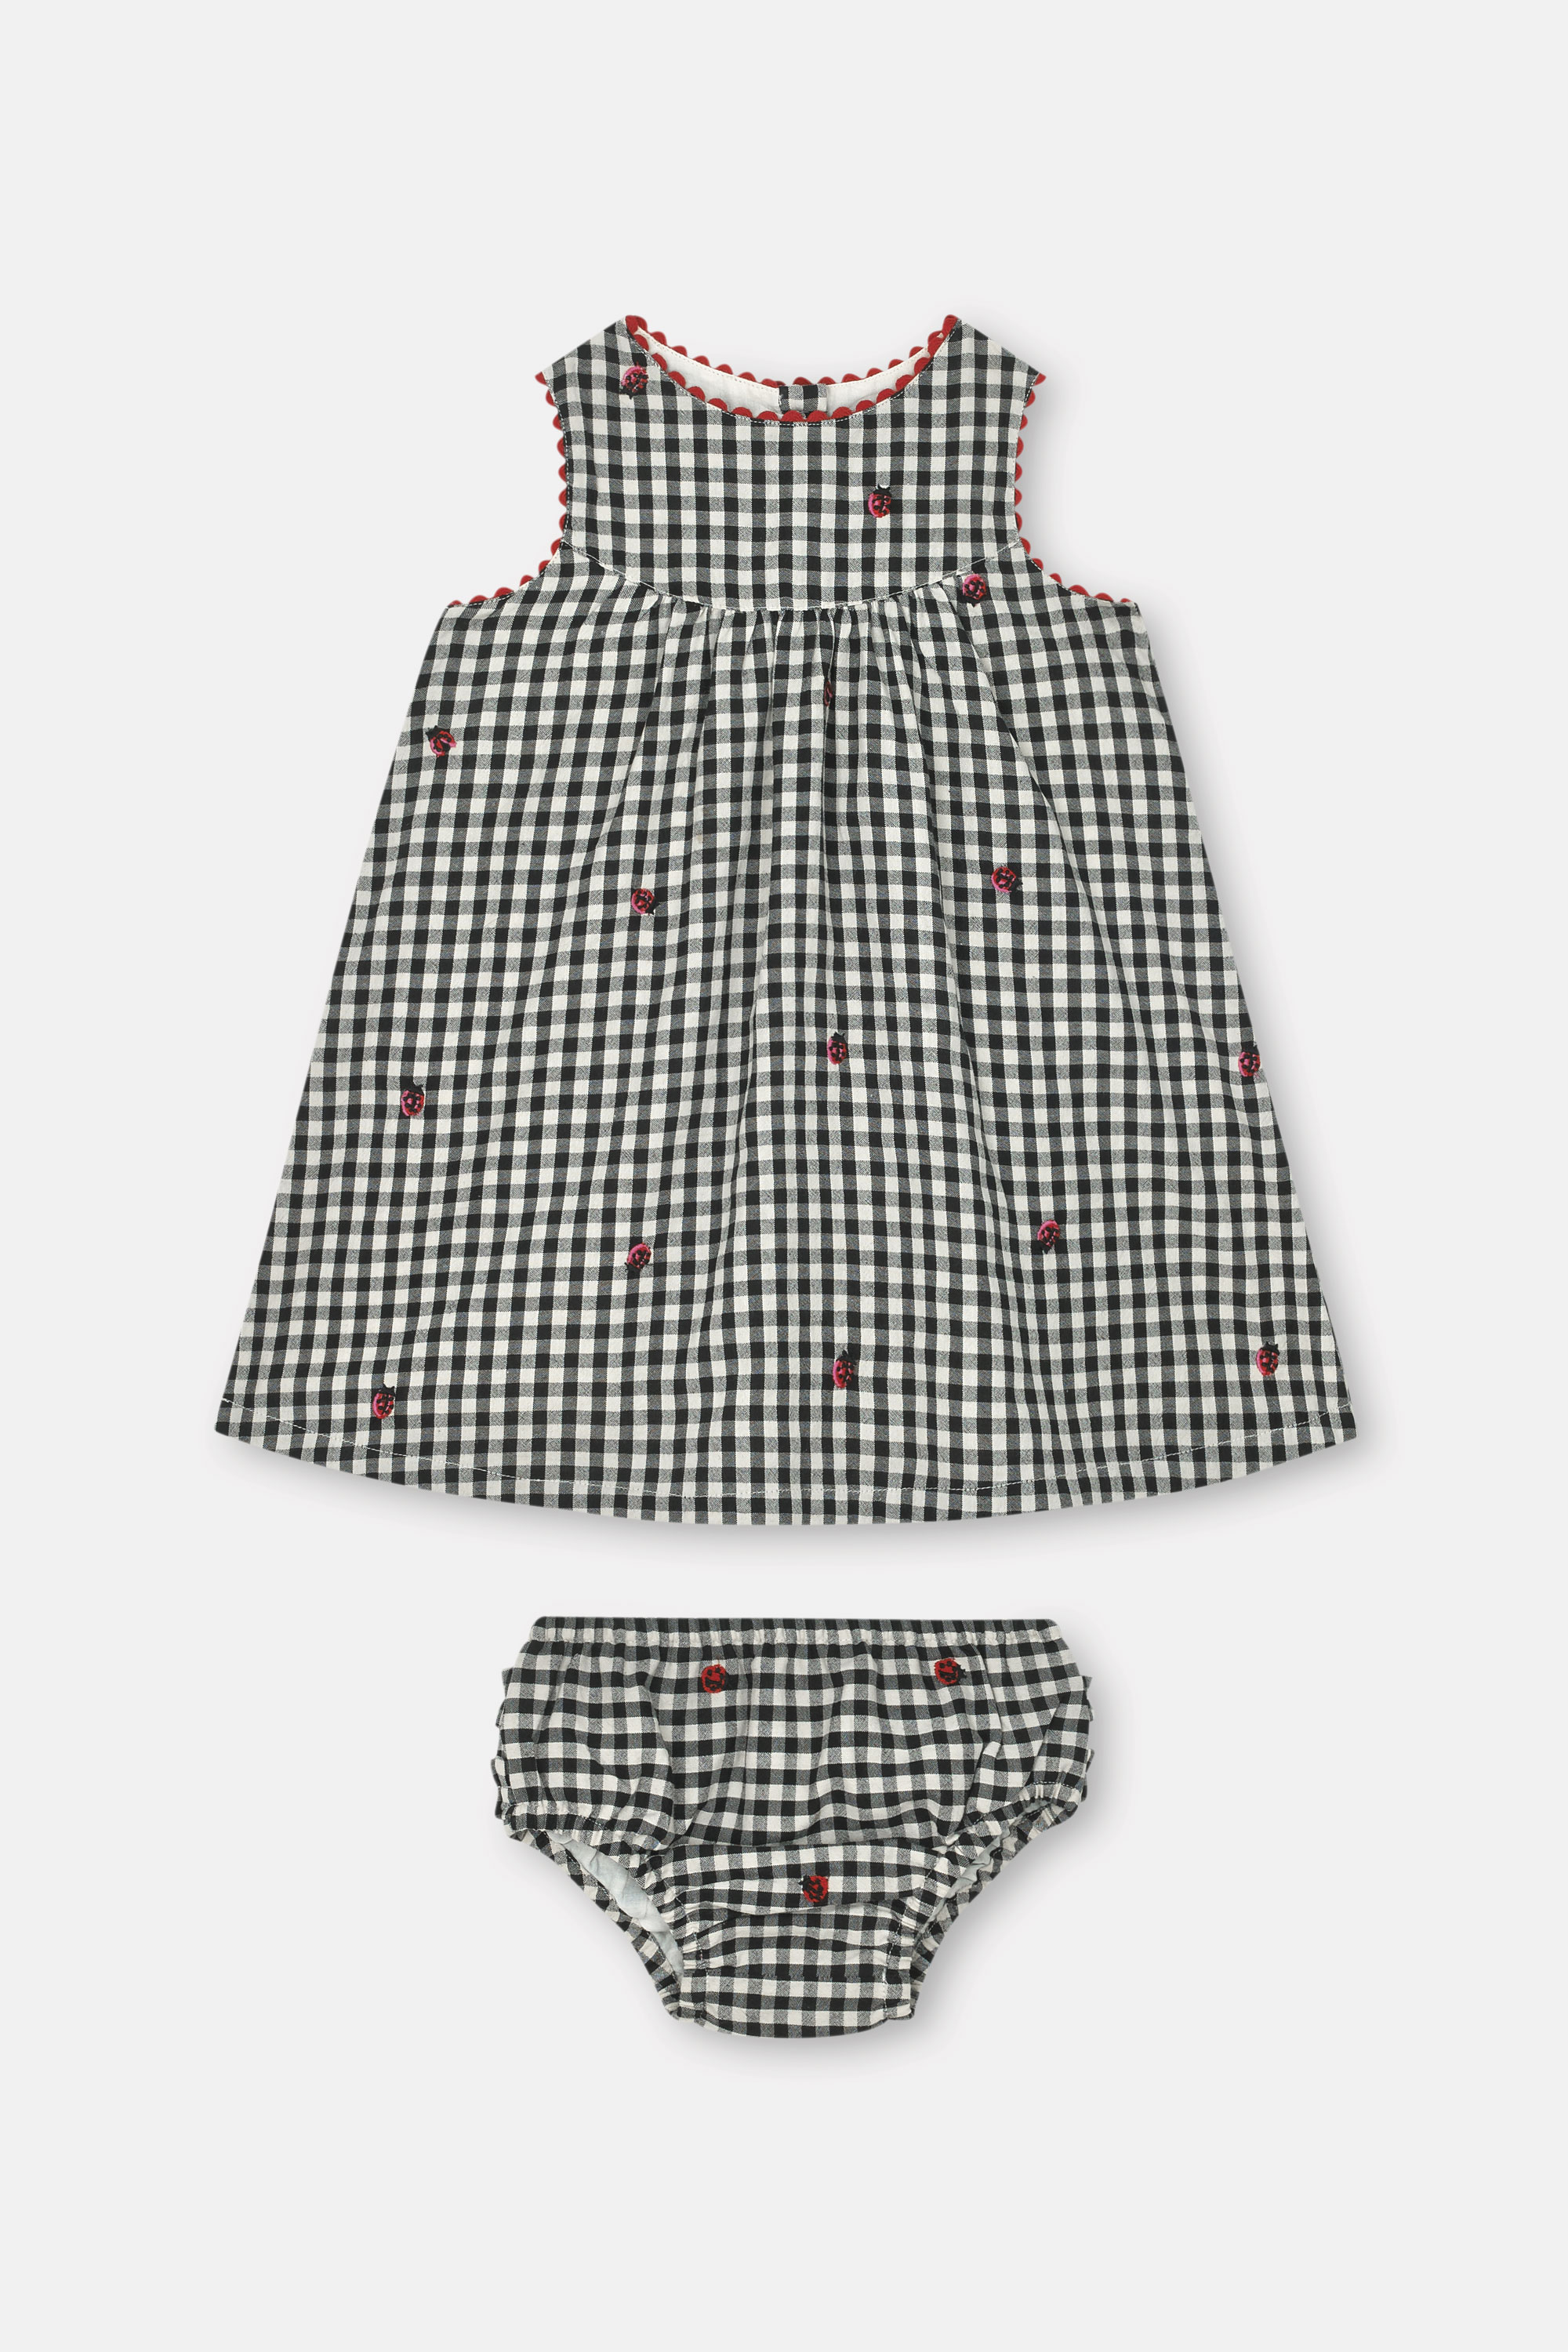 Cath Kidston Ladybug Gingham Baby Embroidered Eleanor Dress in Stone Charcoal, 12-18 Mo